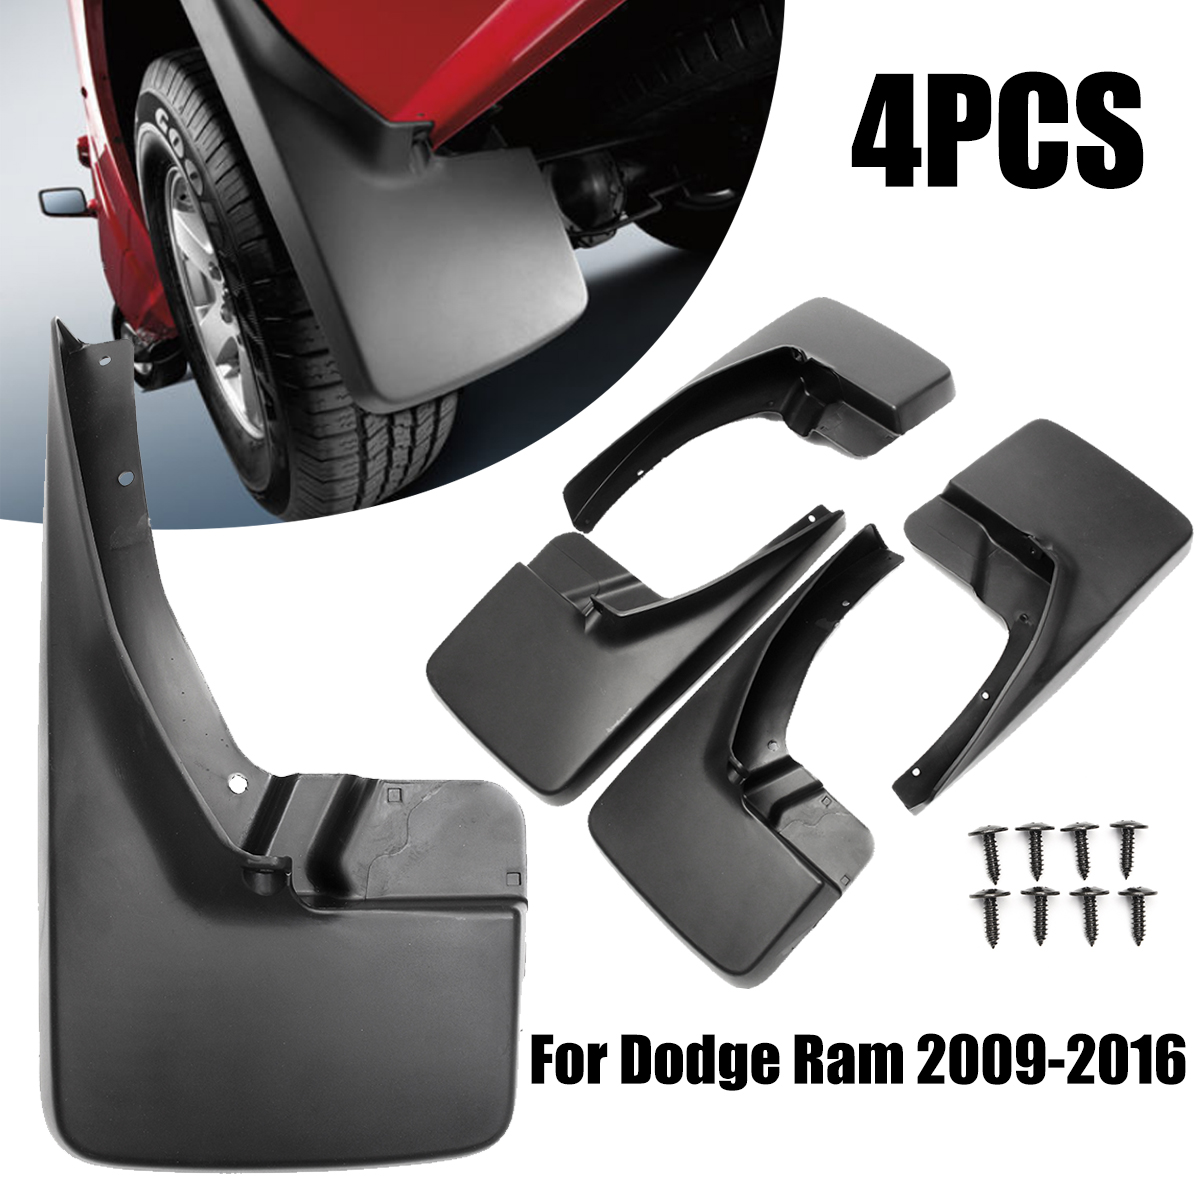 4Pcs Black Molded Splash Guards Mud Guard Flaps Front and Rear Protector Mudguards for Dodge Ram 1500 2009-2017